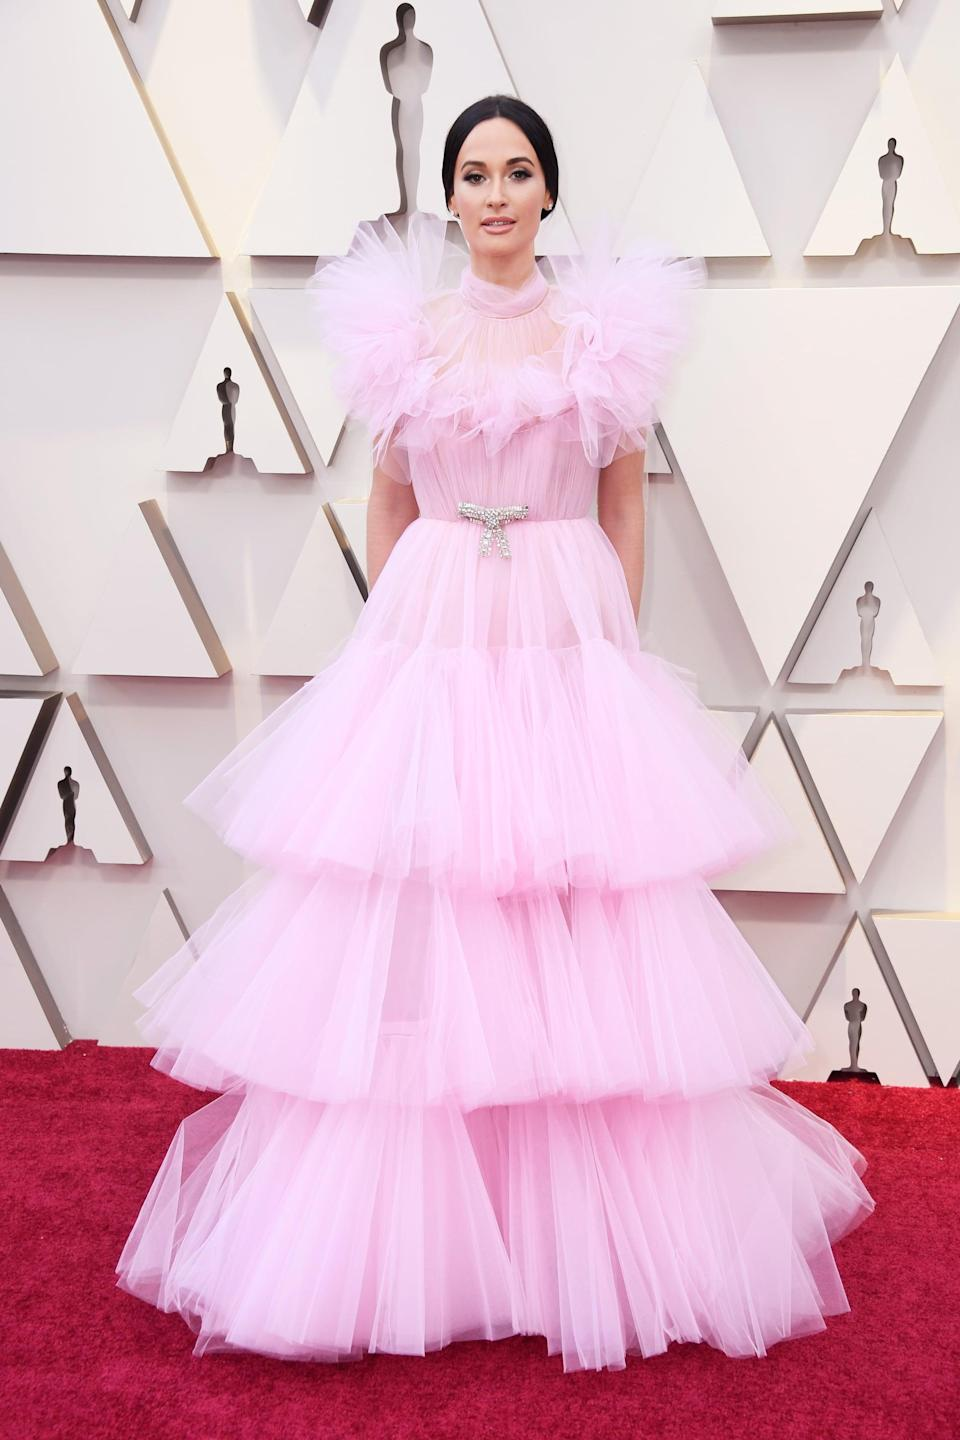 """<p><a rel=""""nofollow noopener"""" href=""""https://www.popsugar.com/fashion/Kacey-Musgraves-Dress-2019-Oscars-45832037"""" target=""""_blank"""" data-ylk=""""slk:Wearing a Giambattista Valli Haute Couture gown"""" class=""""link rapid-noclick-resp"""">Wearing a Giambattista Valli Haute Couture gown</a> with Brian Atwood shoes and a Jimmy Choo clutch.</p>"""